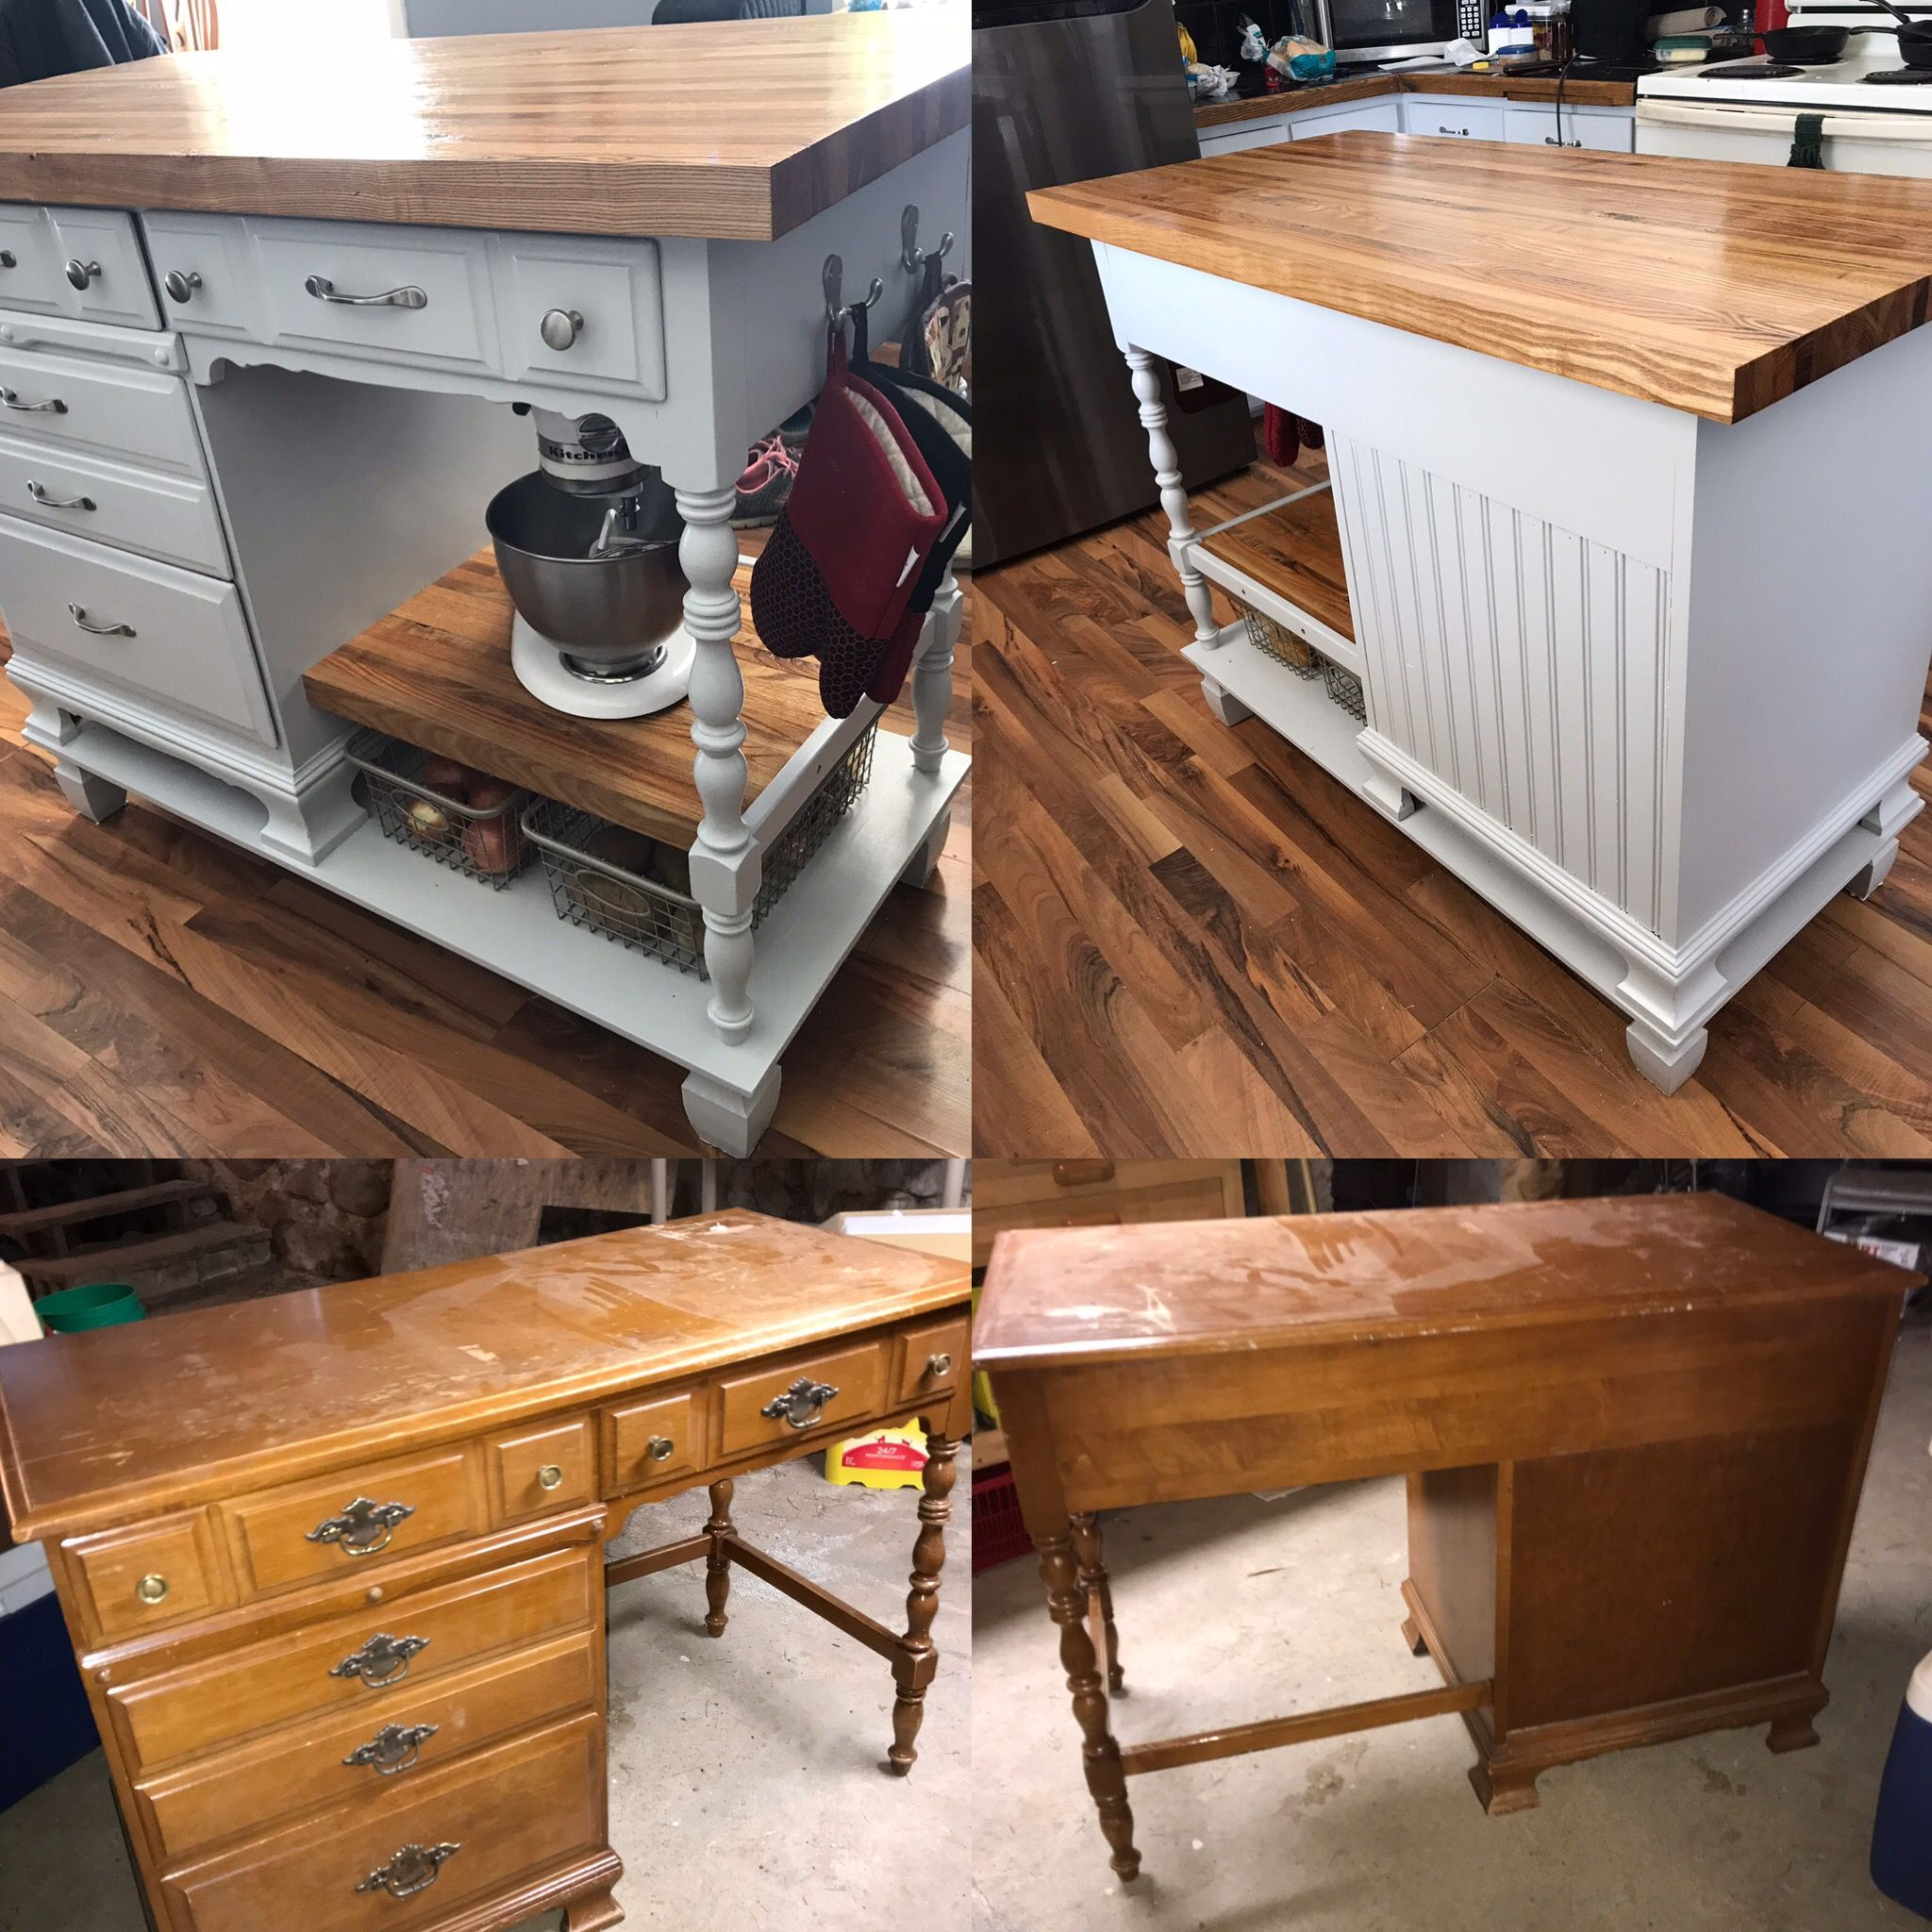 desk | kitchen island | island | diy kitchen island | kitchen island ideas | diy | diy island | kitchen island made from desks | repurpose